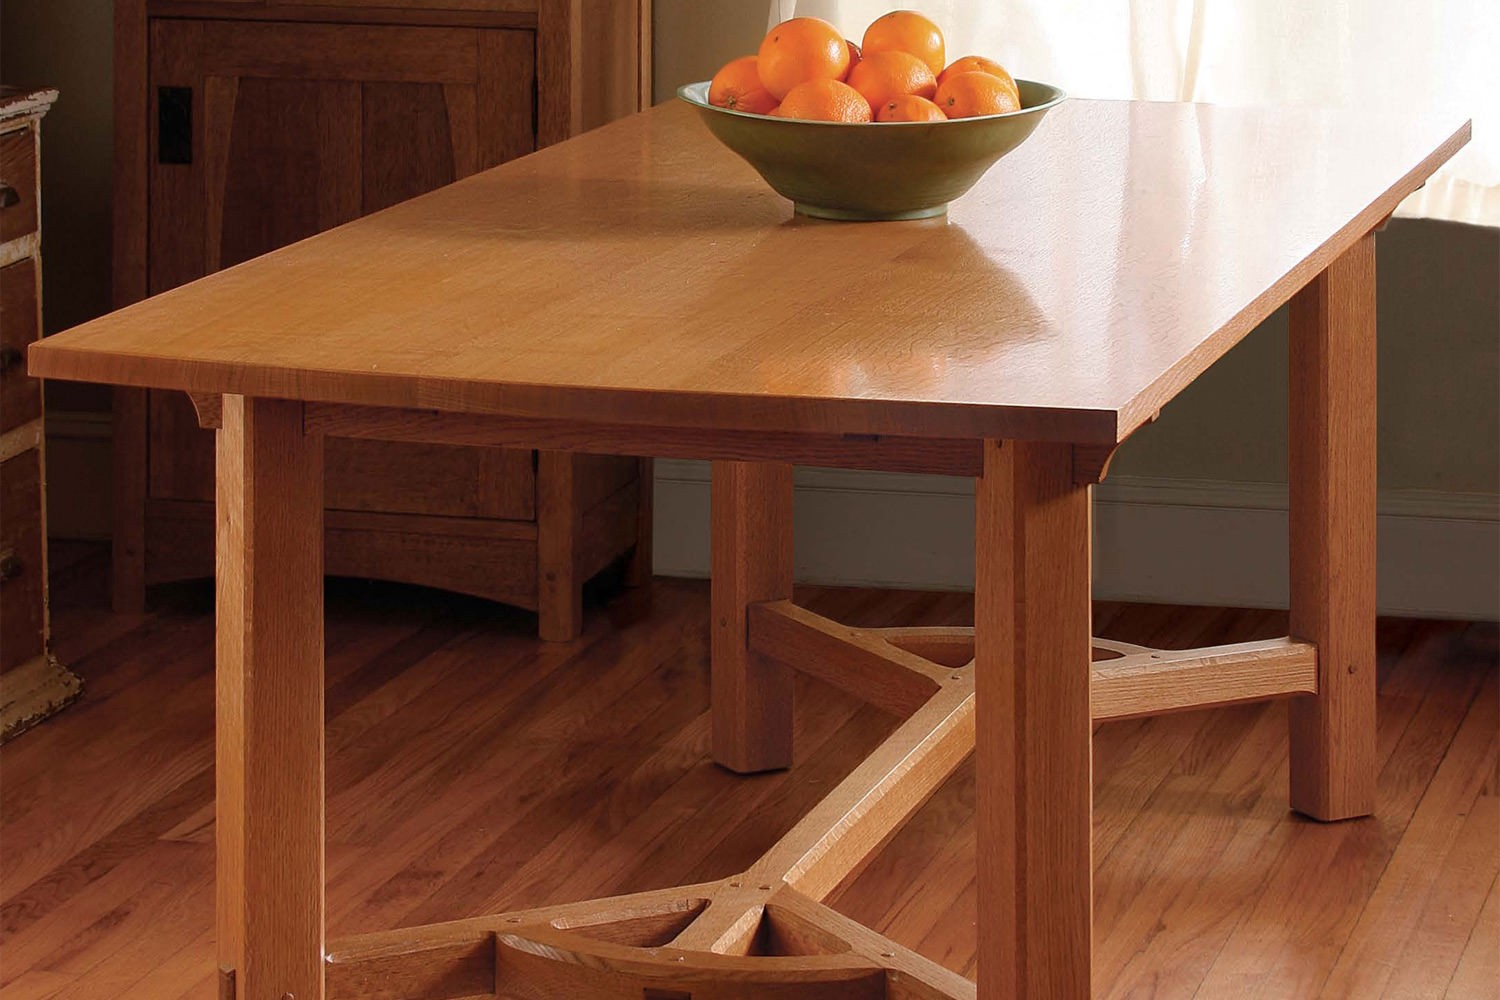 How To Build A Wood Table Diy Oak Table Easy Woodworking By Expert Guides Ebooks Medium